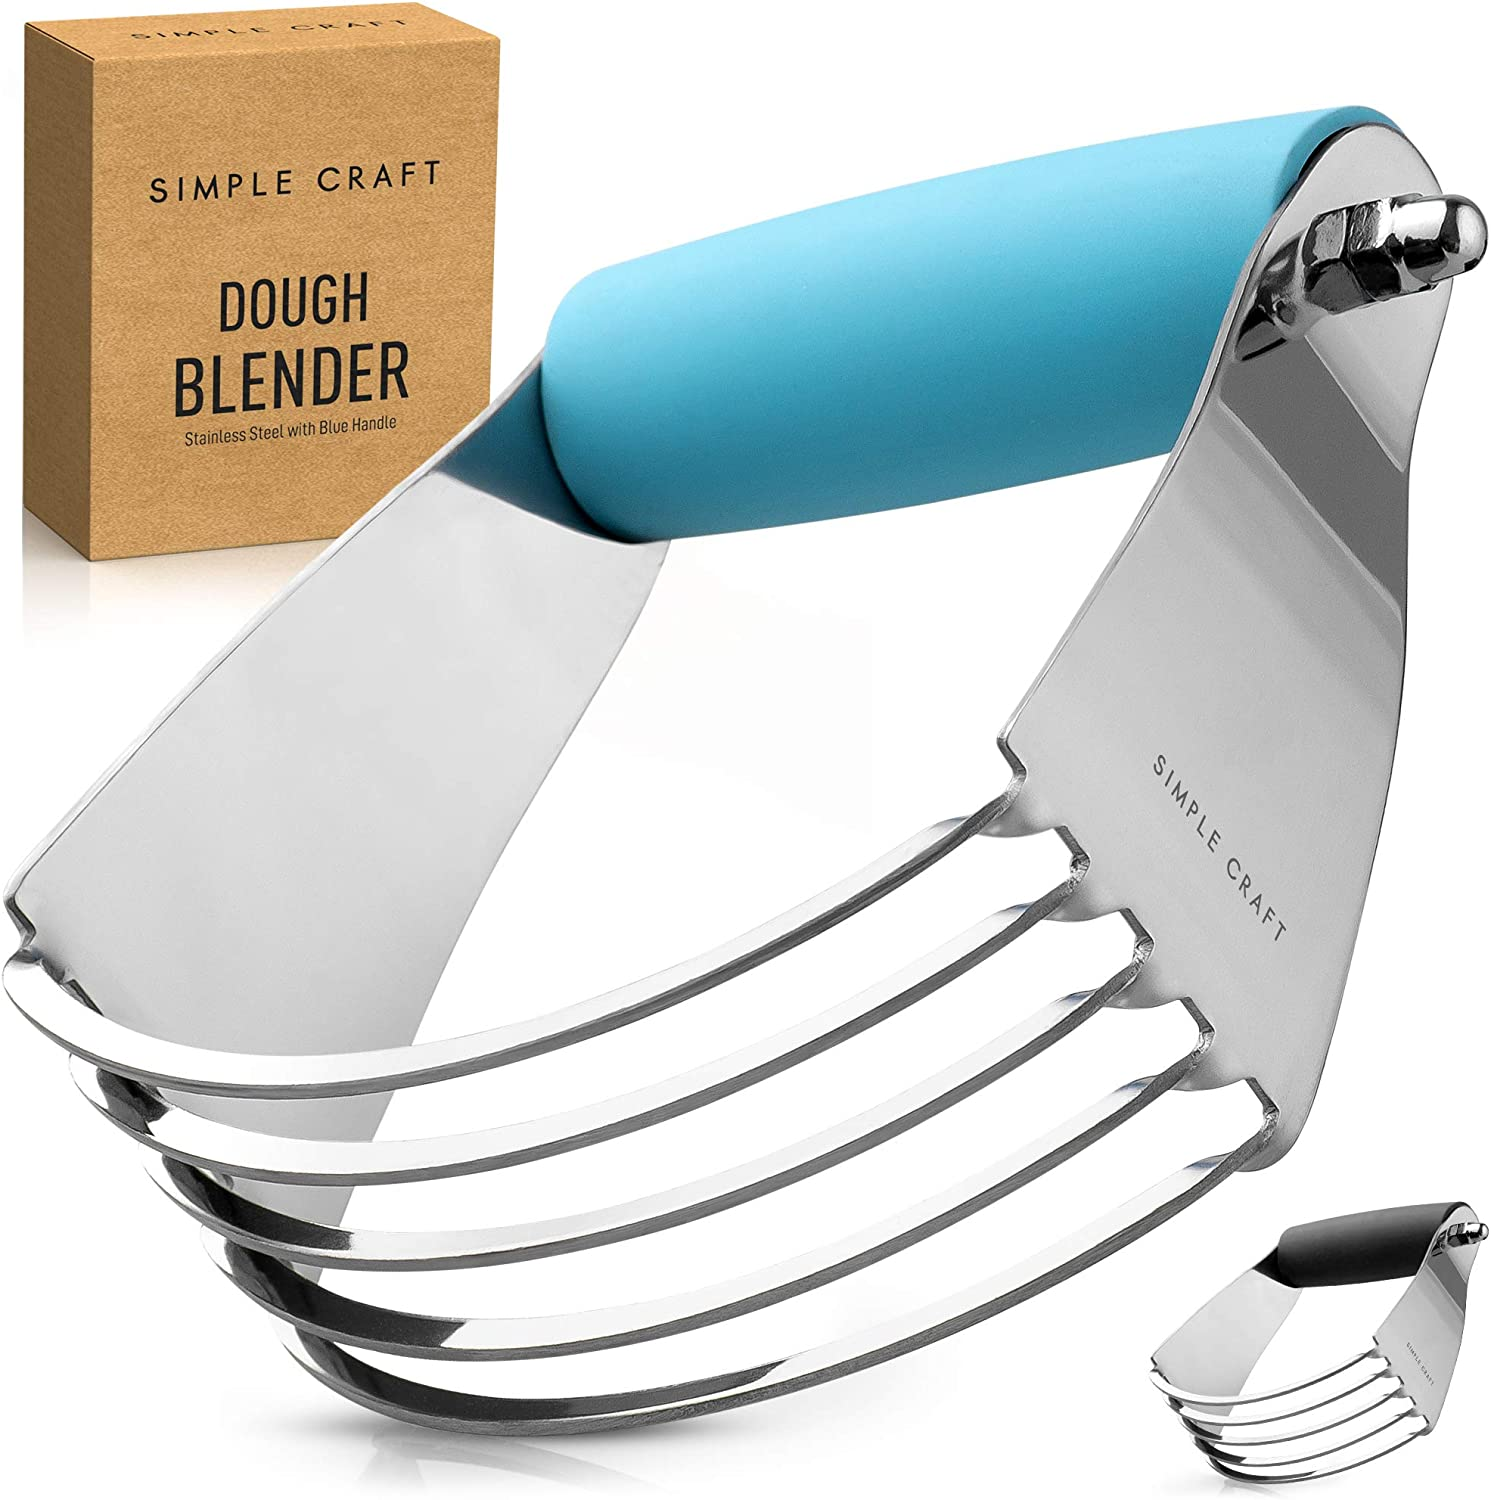 Simple Craft Pastry Cutter For Baking - Stainless Steel Pastry Blender Tool With Comfortable Grip Handle - Heavy Duty Dough Cutters & Dough Blender For Mixing Butter, Flour, and More (Blue)